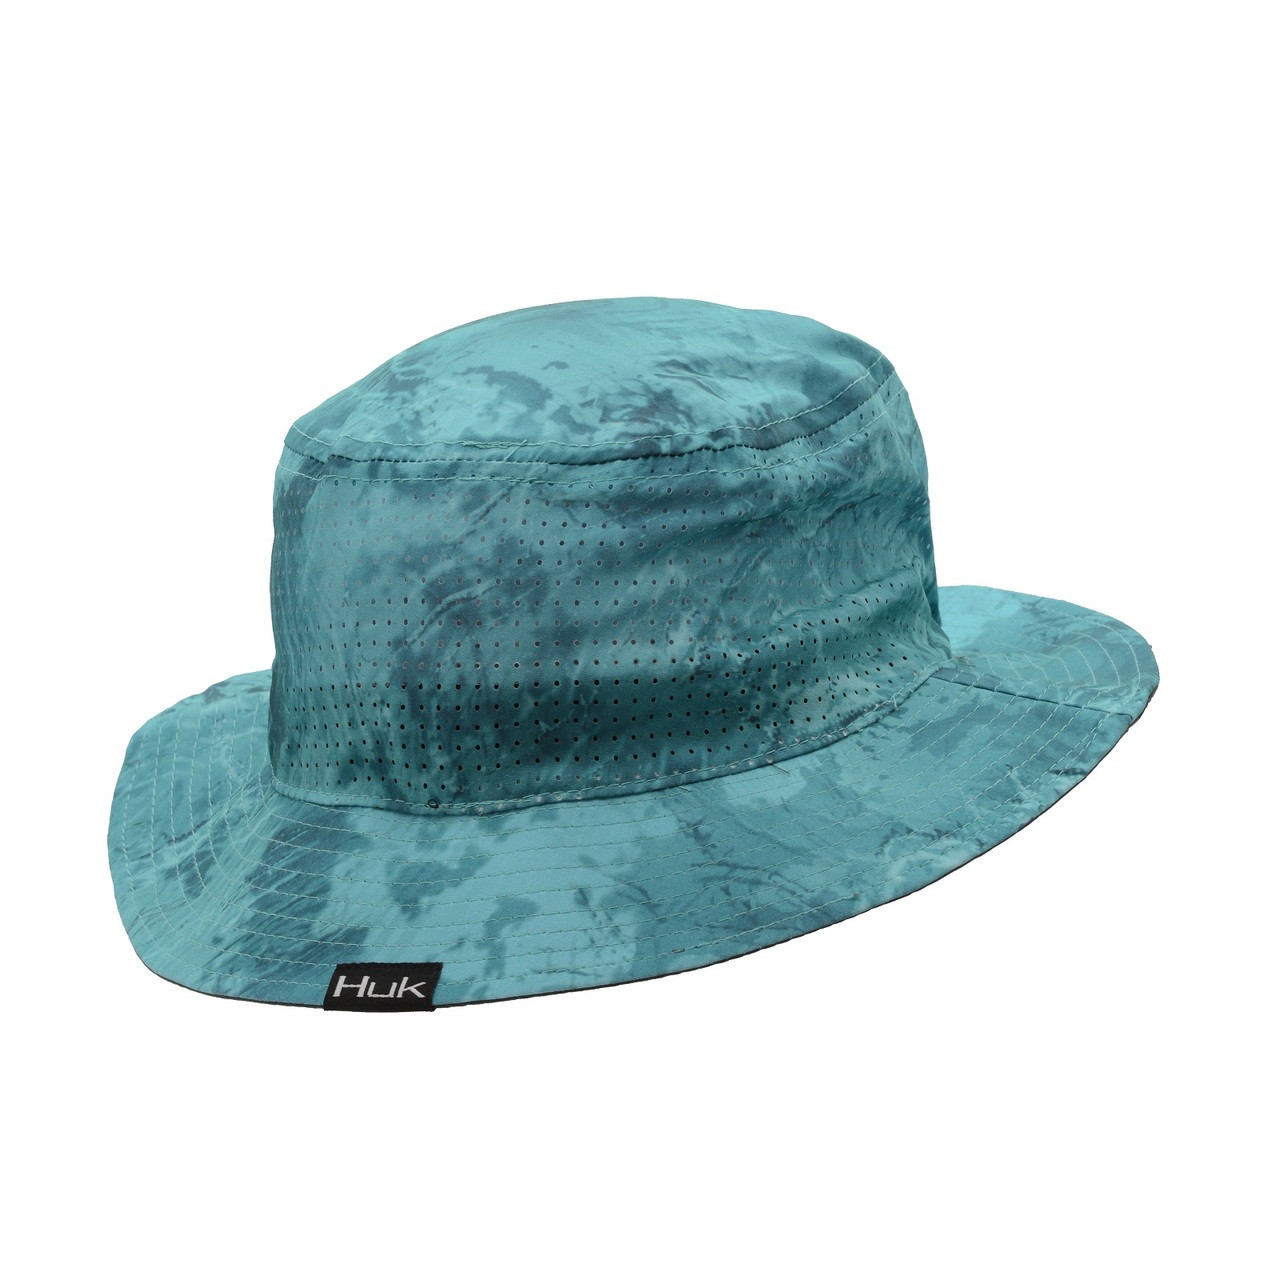 Huk Camo Fishing Bucket Hat H3000204